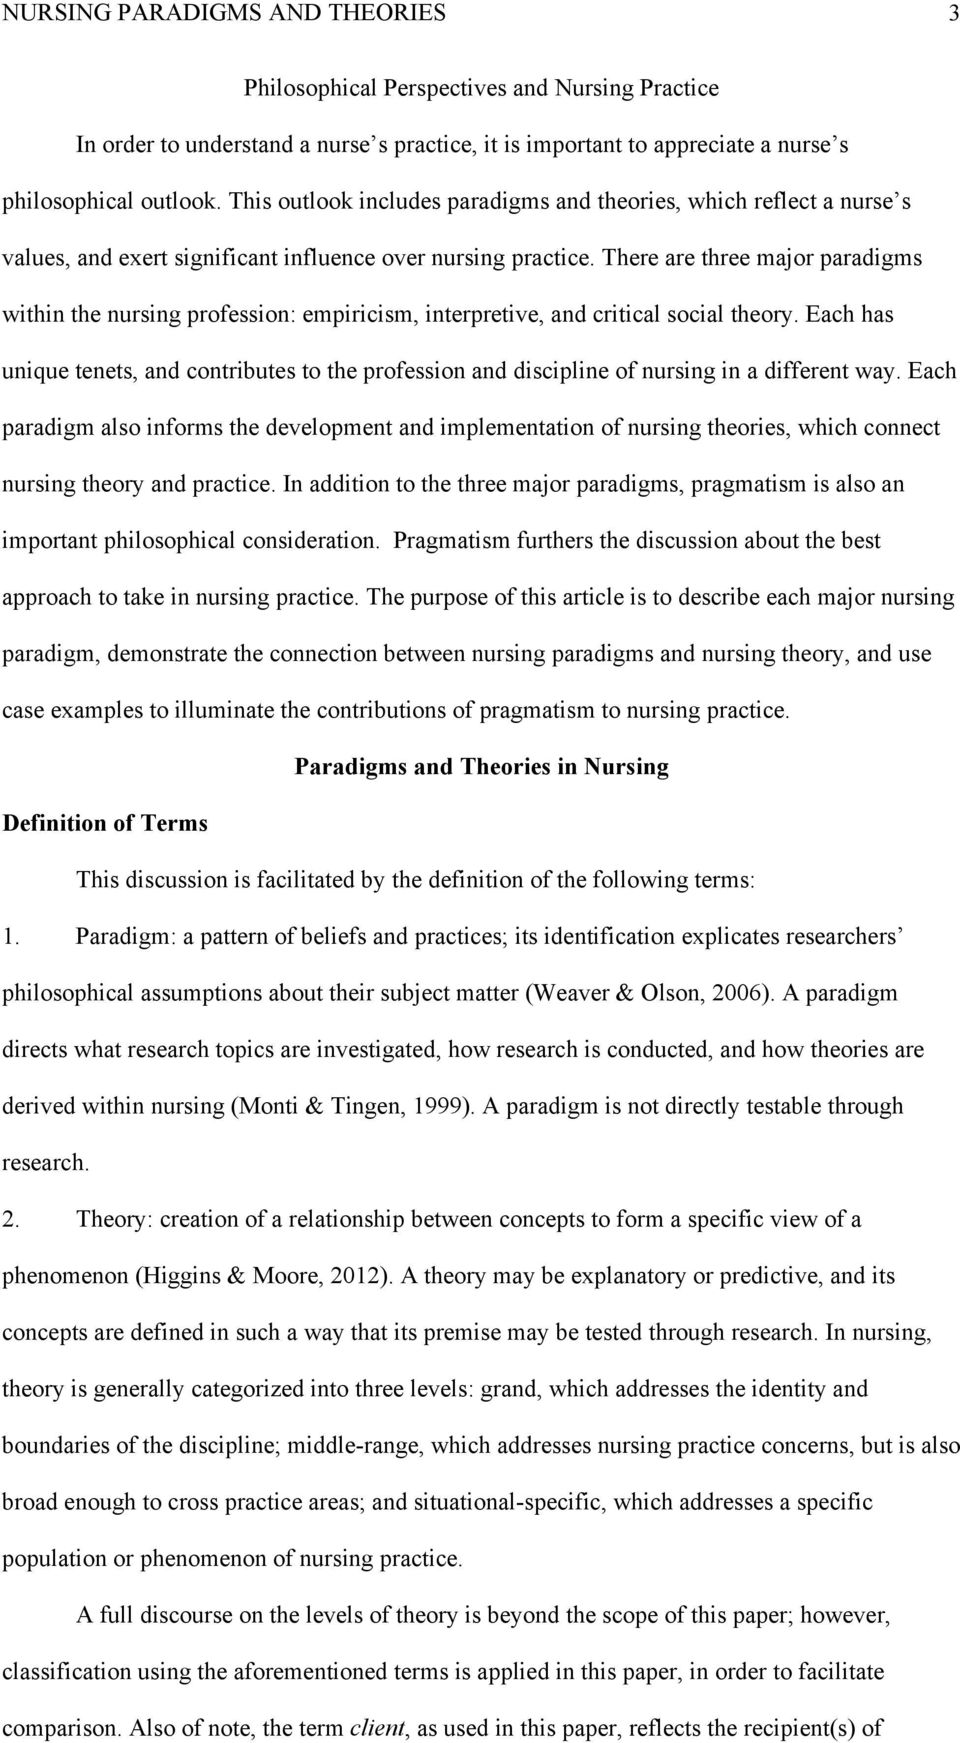 running head nursing paradigms and theories pdf there are three major paradigms in the nursing profession empiricism interpretive and critical